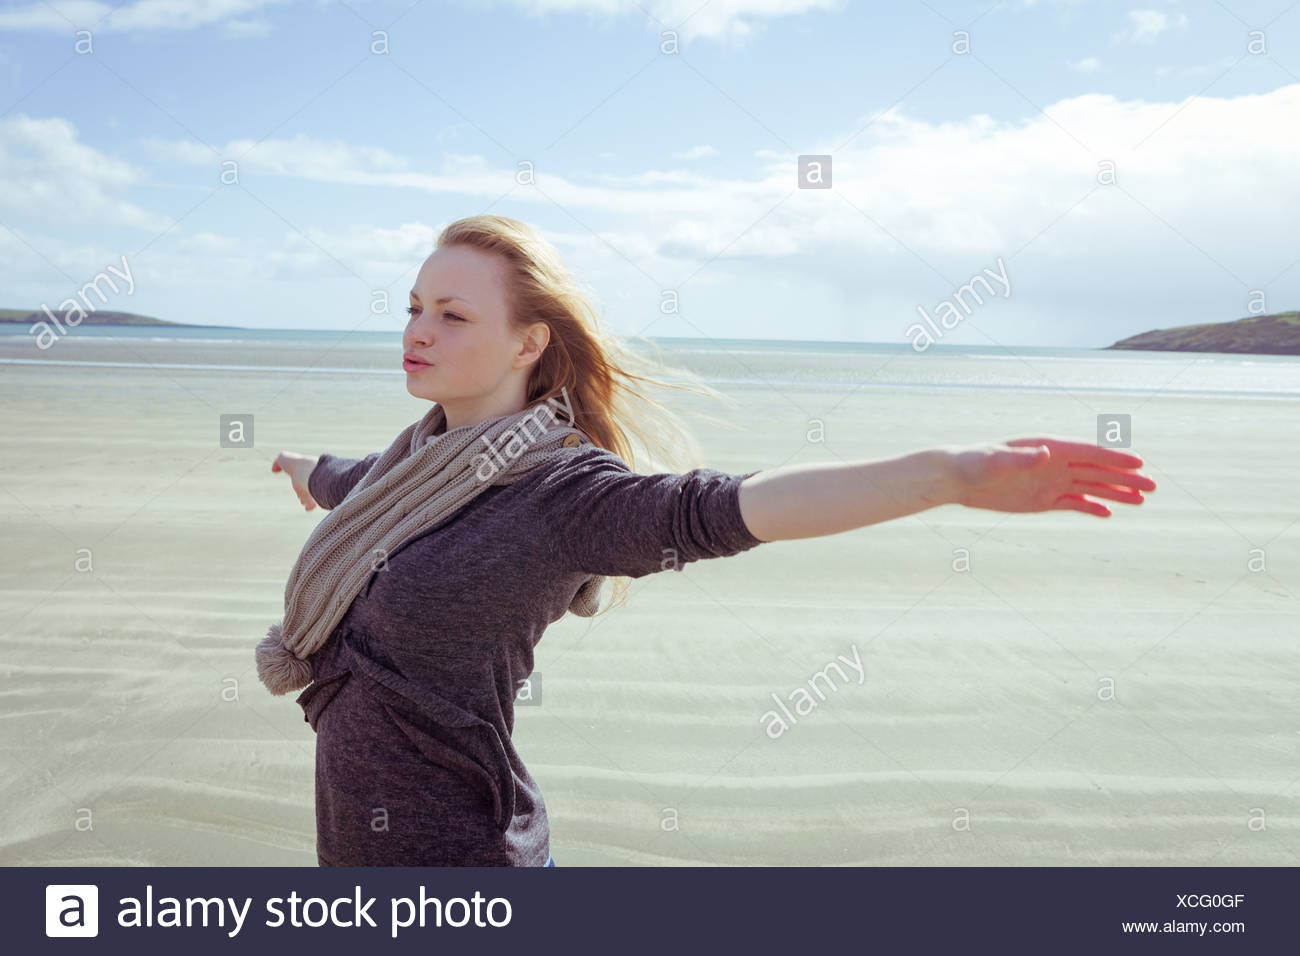 Attractive woman opening her arms in front of the ocean - Stock Image